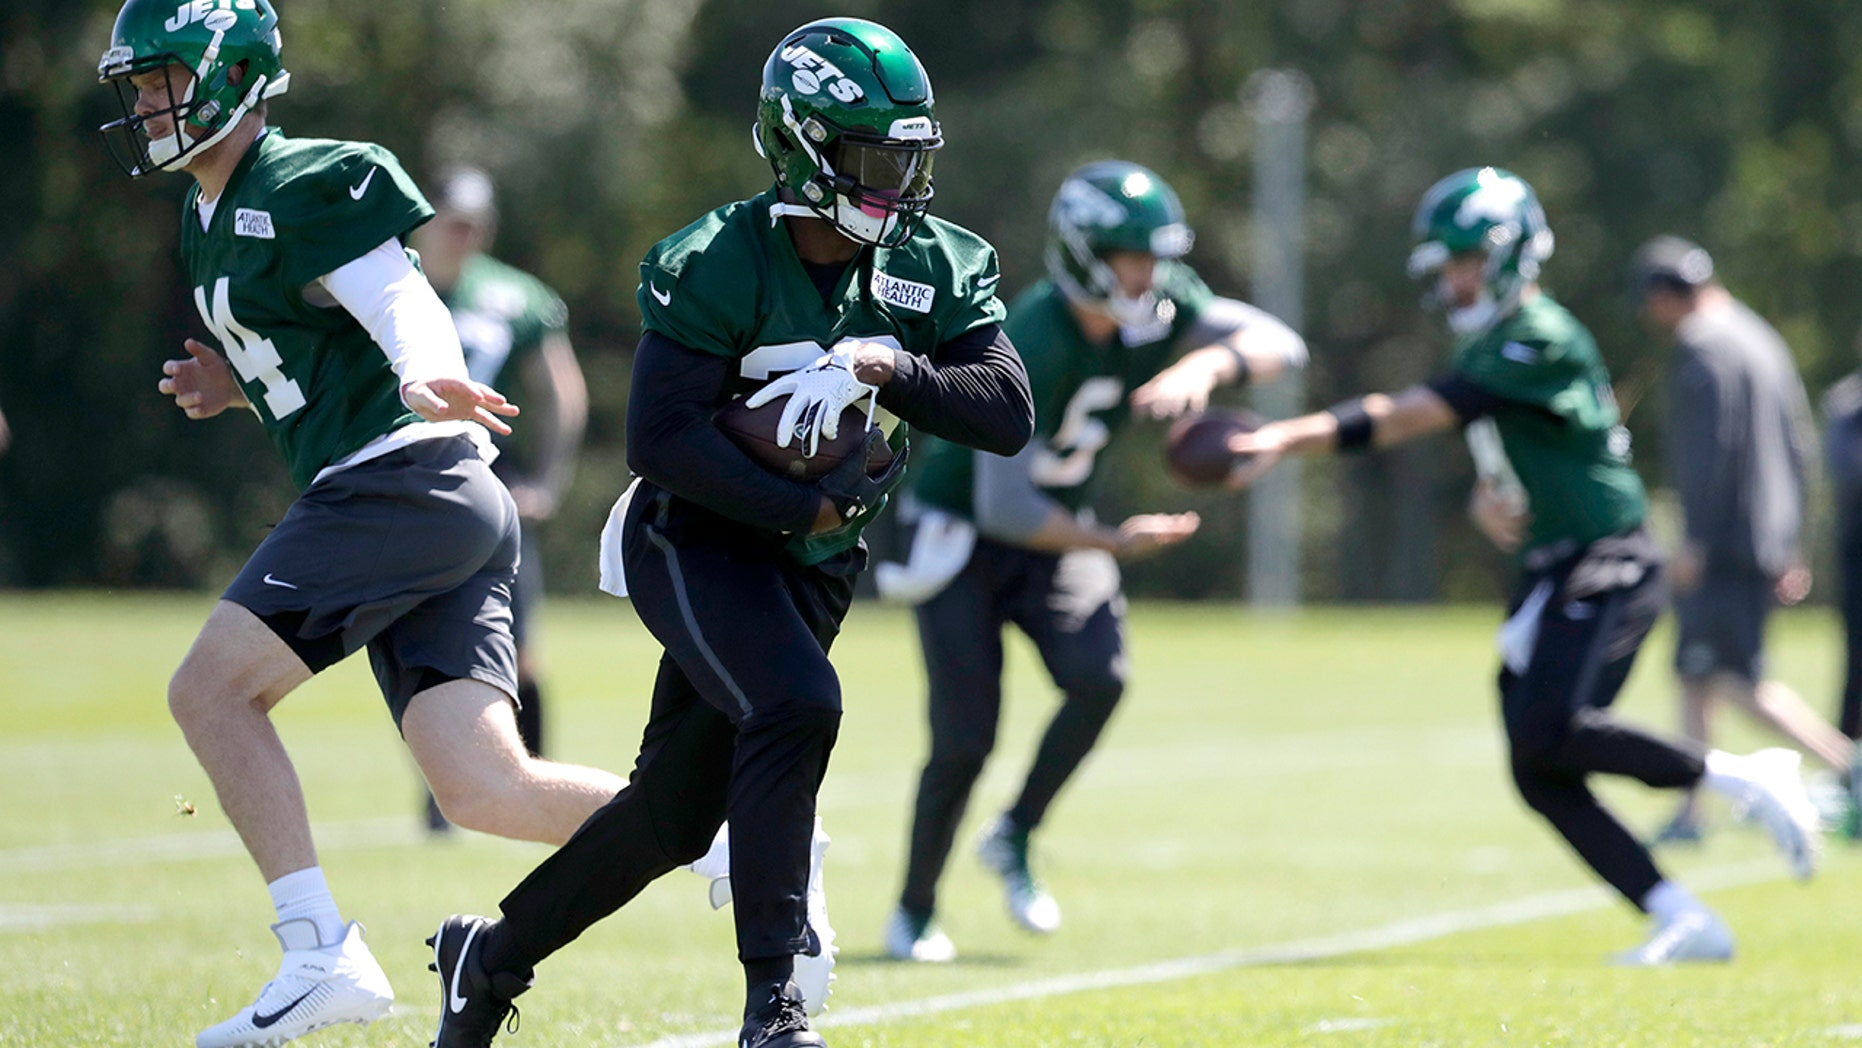 New York Jets quarterback Sam Darnold, left, hands off to running back Le'Veon Bell while running a drill at the team's NFL football training facility in Florham Park, N.J., Tuesday, June 4, 2019. (AP Photo/Julio Cortez)